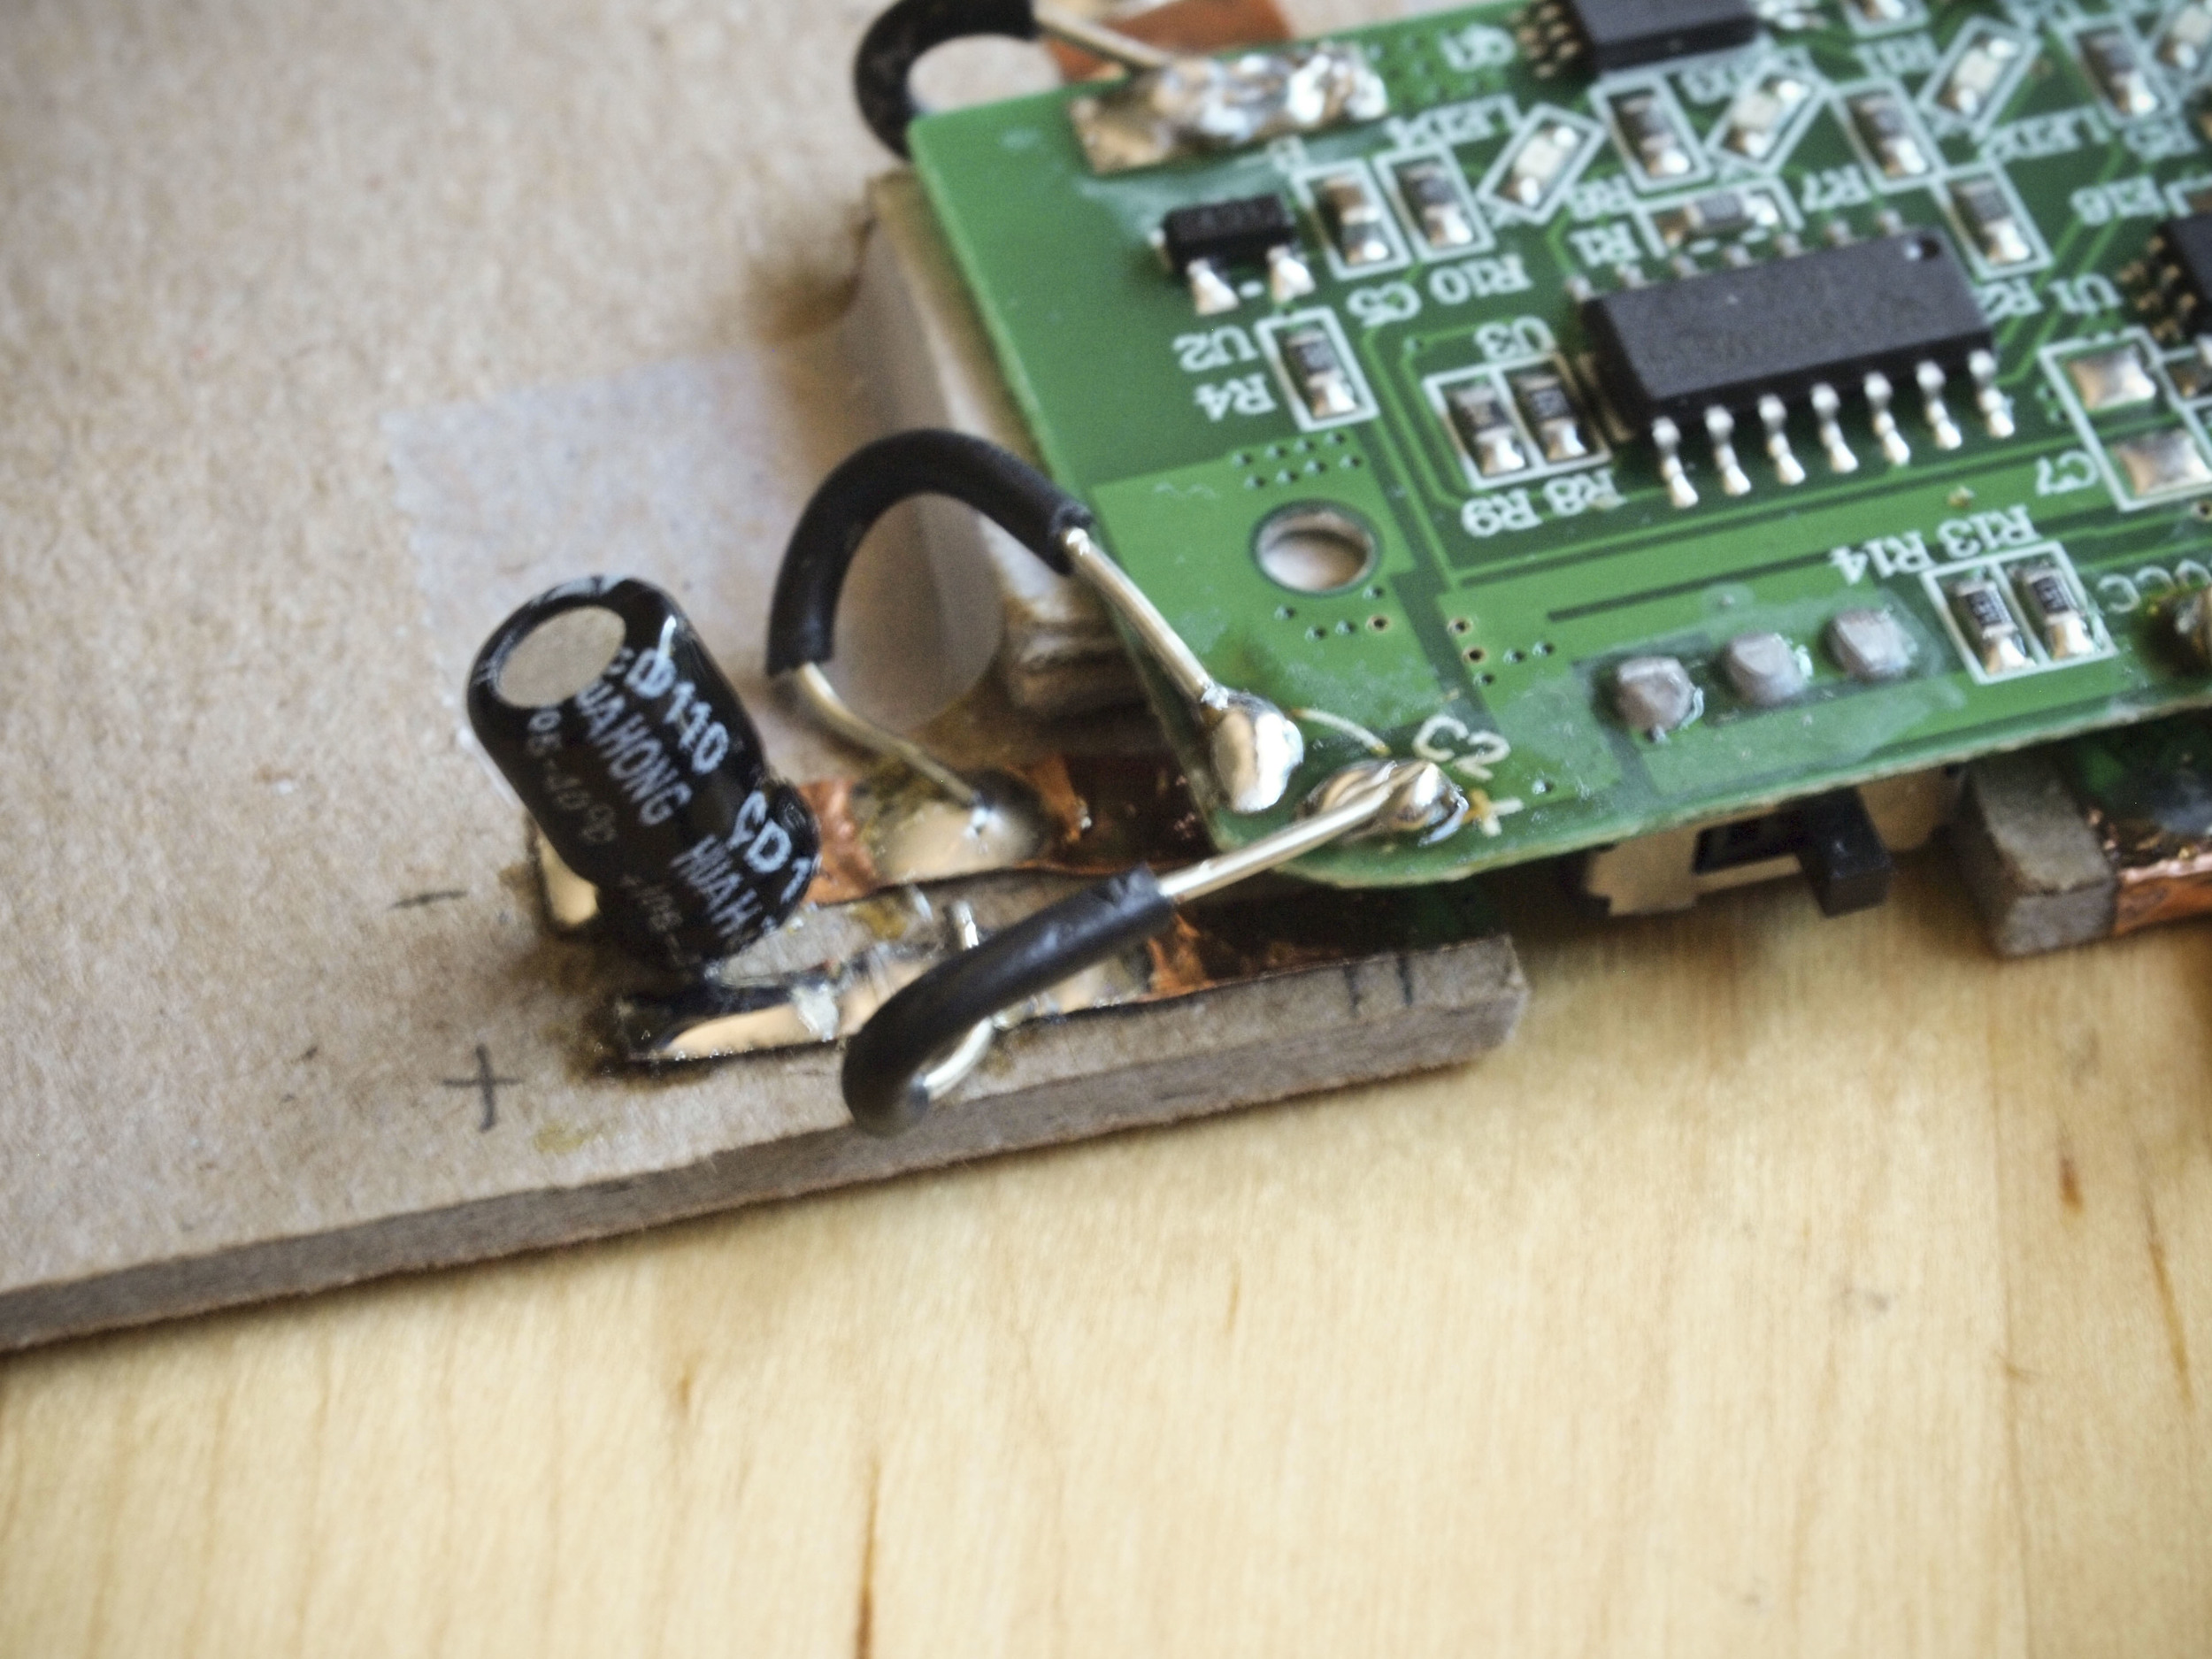 Rechargeable Battery Notebook Hack Prototype Nexmap Temperature Status Indicator Circuit And Hacked Hot Glue Gun